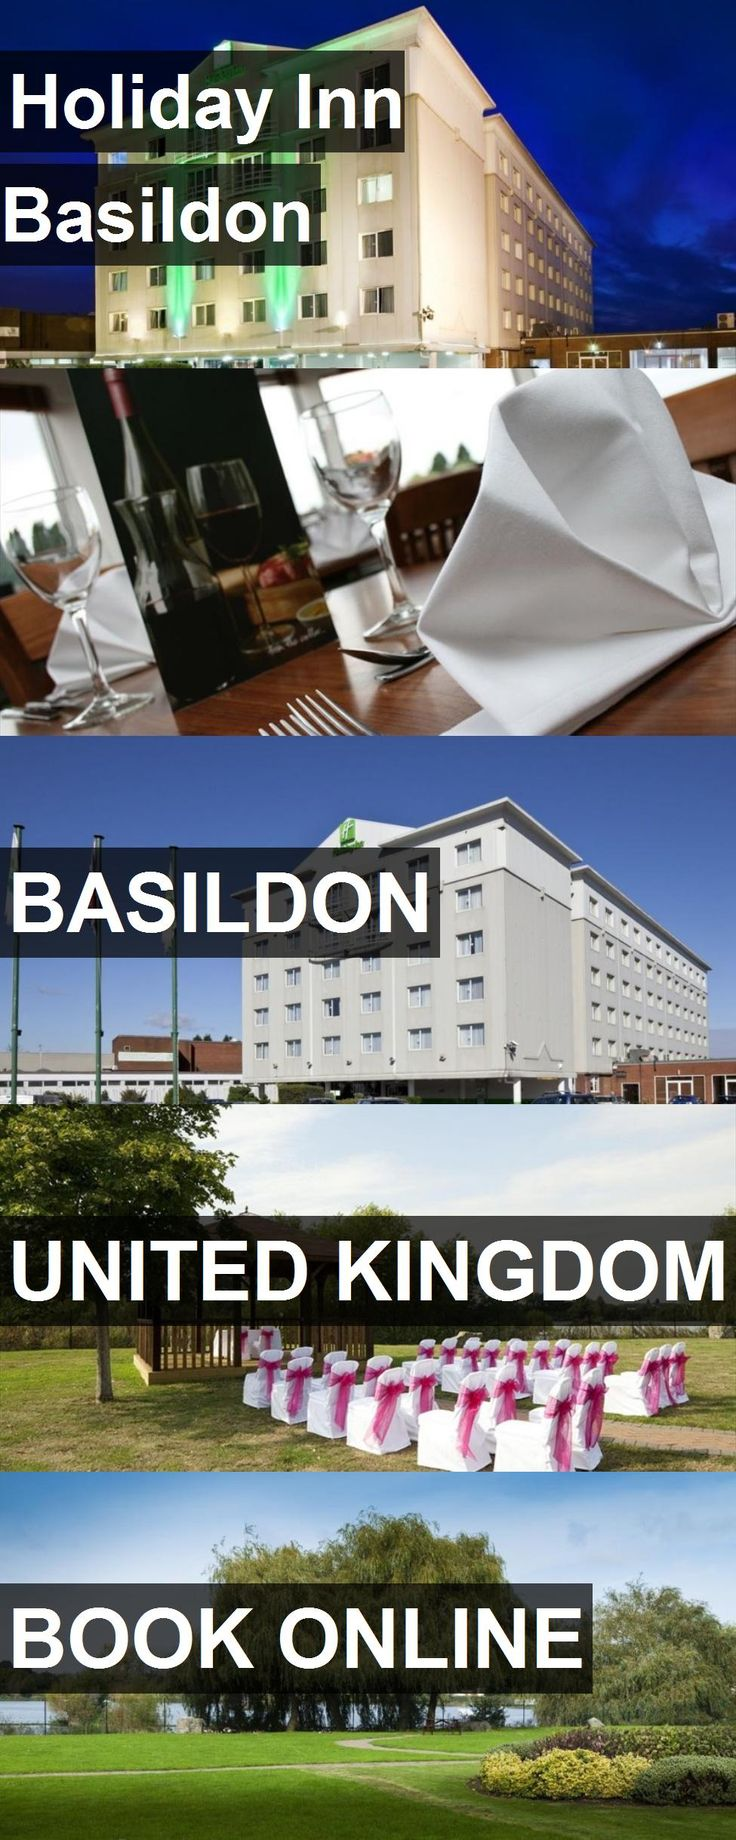 Hotel Holiday Inn Basildon in BASILDON, United Kingdom. For more information, photos, reviews and best prices please follow the link. #UnitedKingdom #BASILDON #travel #vacation #hotel